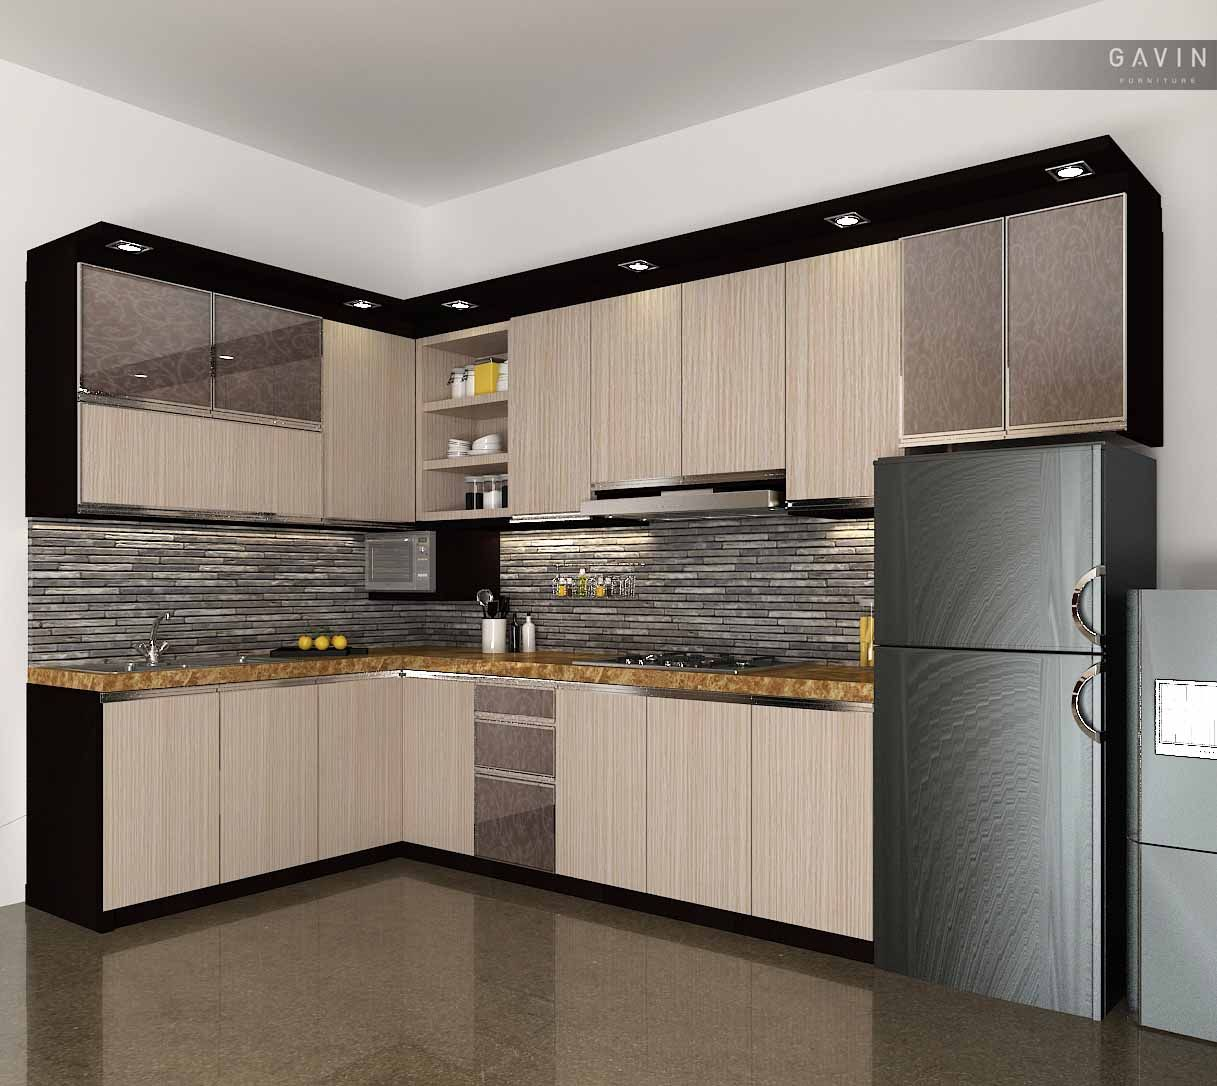 design interior kitchen set minimalis. Desain Kitchen Set Minimalis HPL Di Kemanggisan  Kitchen Set